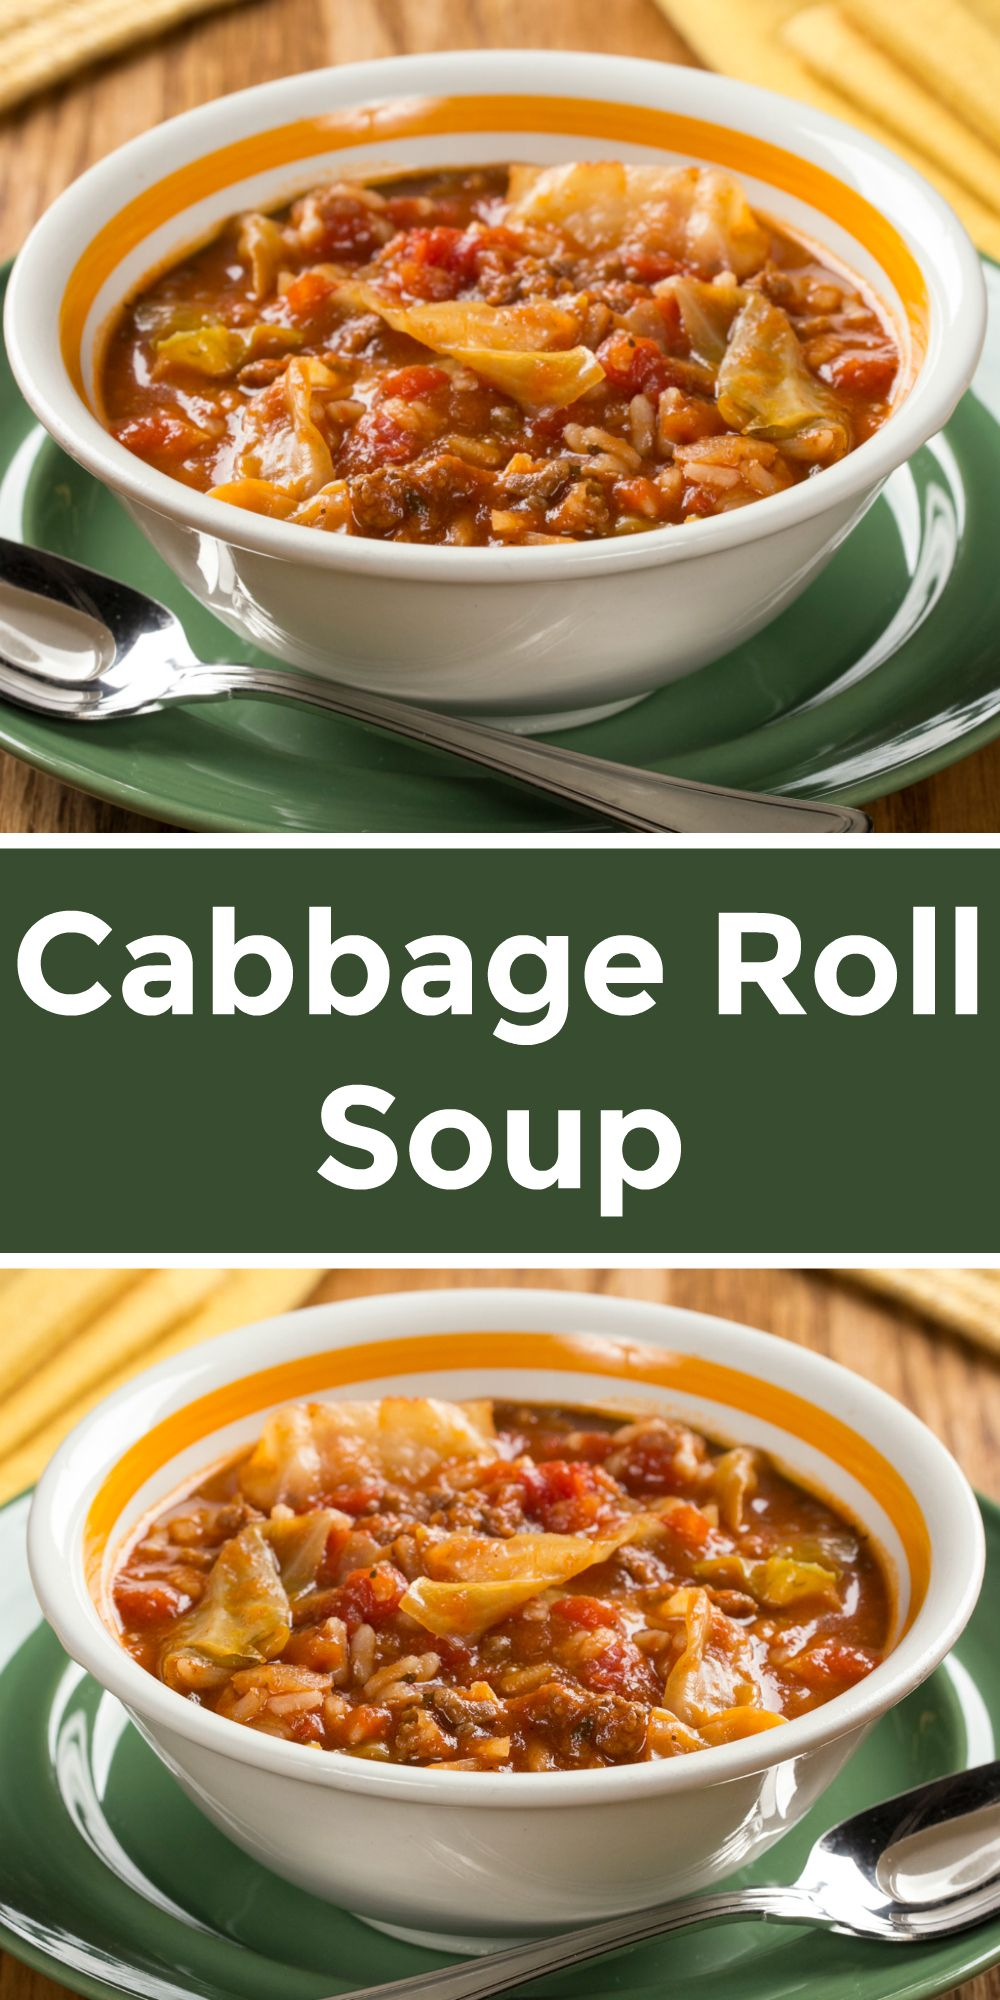 cabbage roll soup | recipe | linda's diabetic diet ideas | pinterest